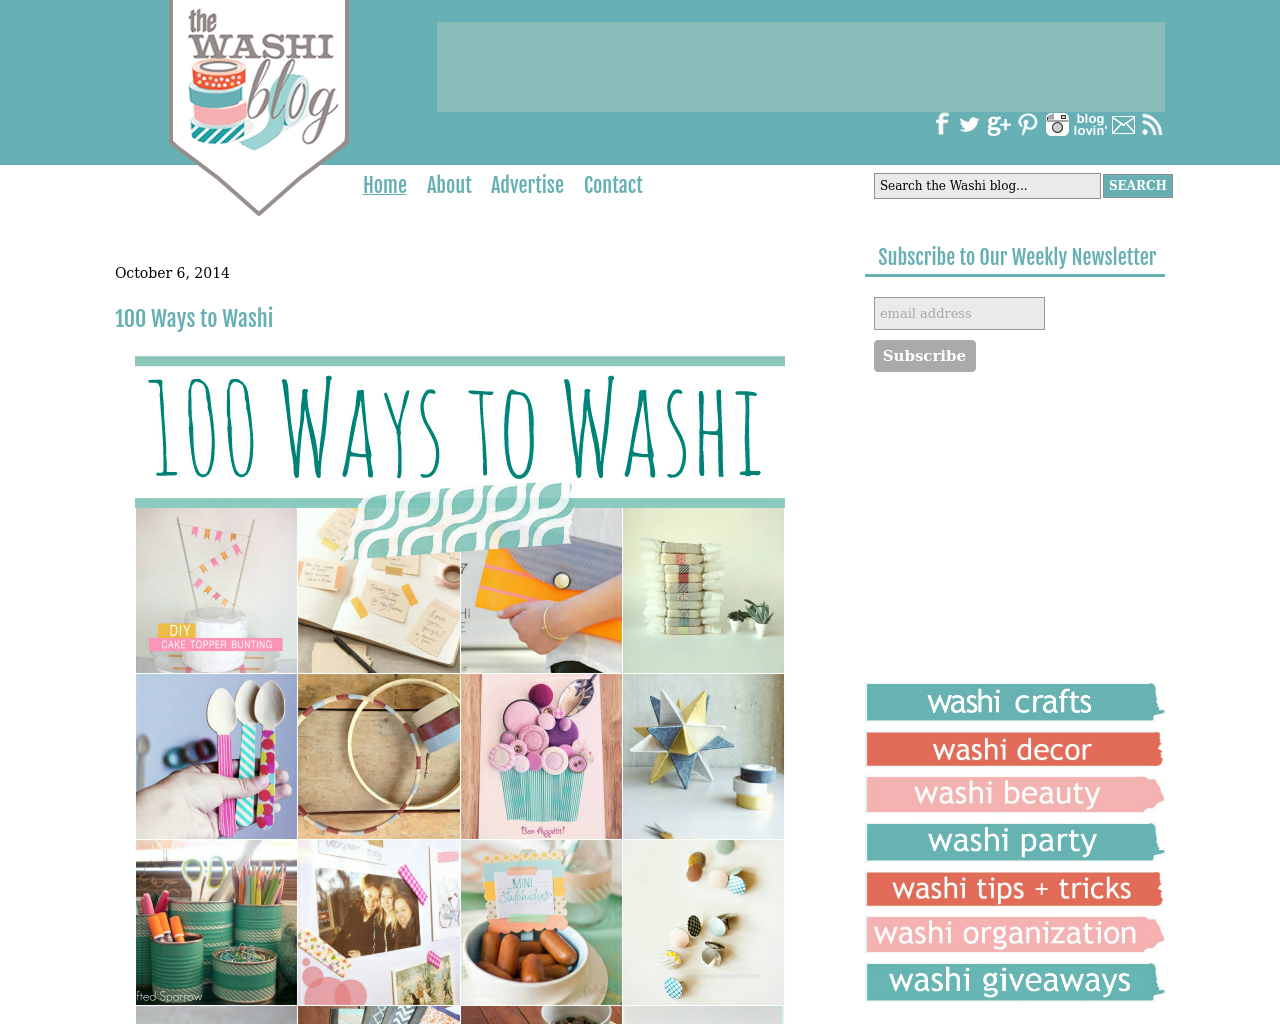 The-Washi-Blog-Advertising-Reviews-Pricing